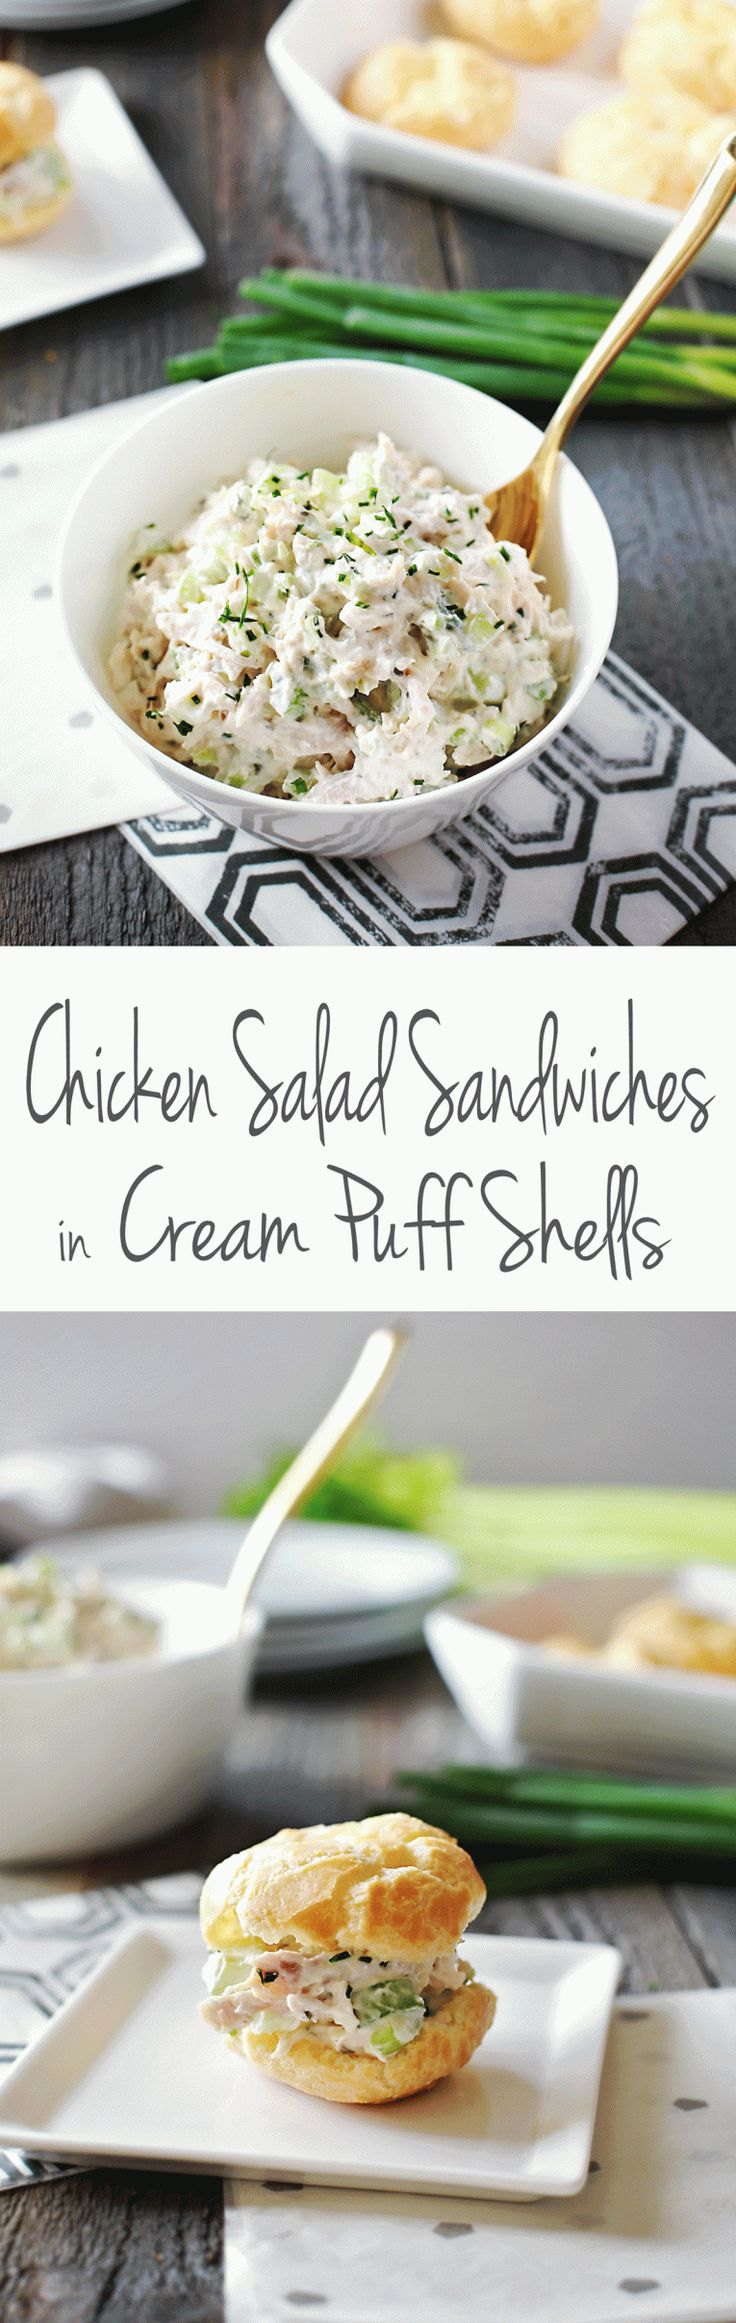 Delicious Chicken Salad Sandwiches served in cream puff shells that are super easy to make and are freezable. Amazing recipe by Flirting with Flavor.